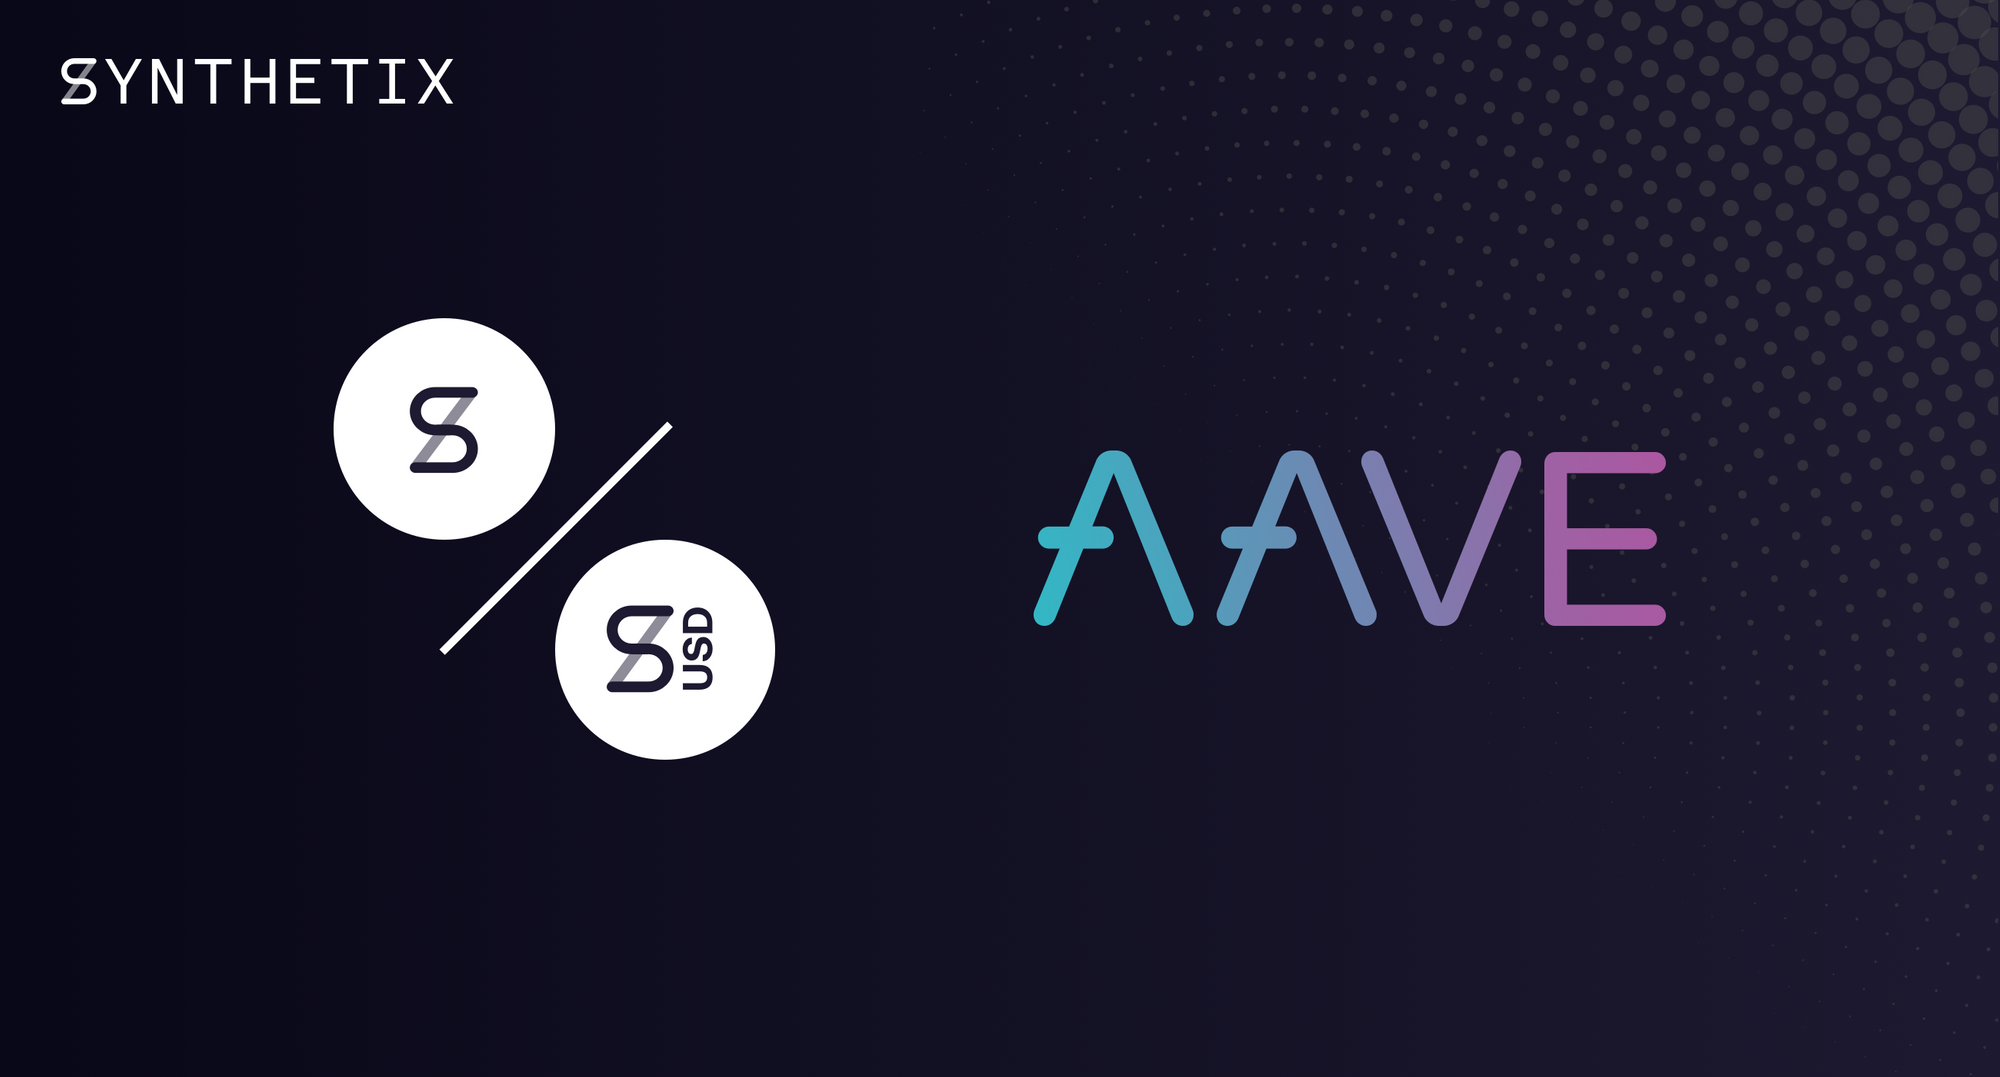 sUSD and SNX are now available in Aave Protocol for lending and borrowing!